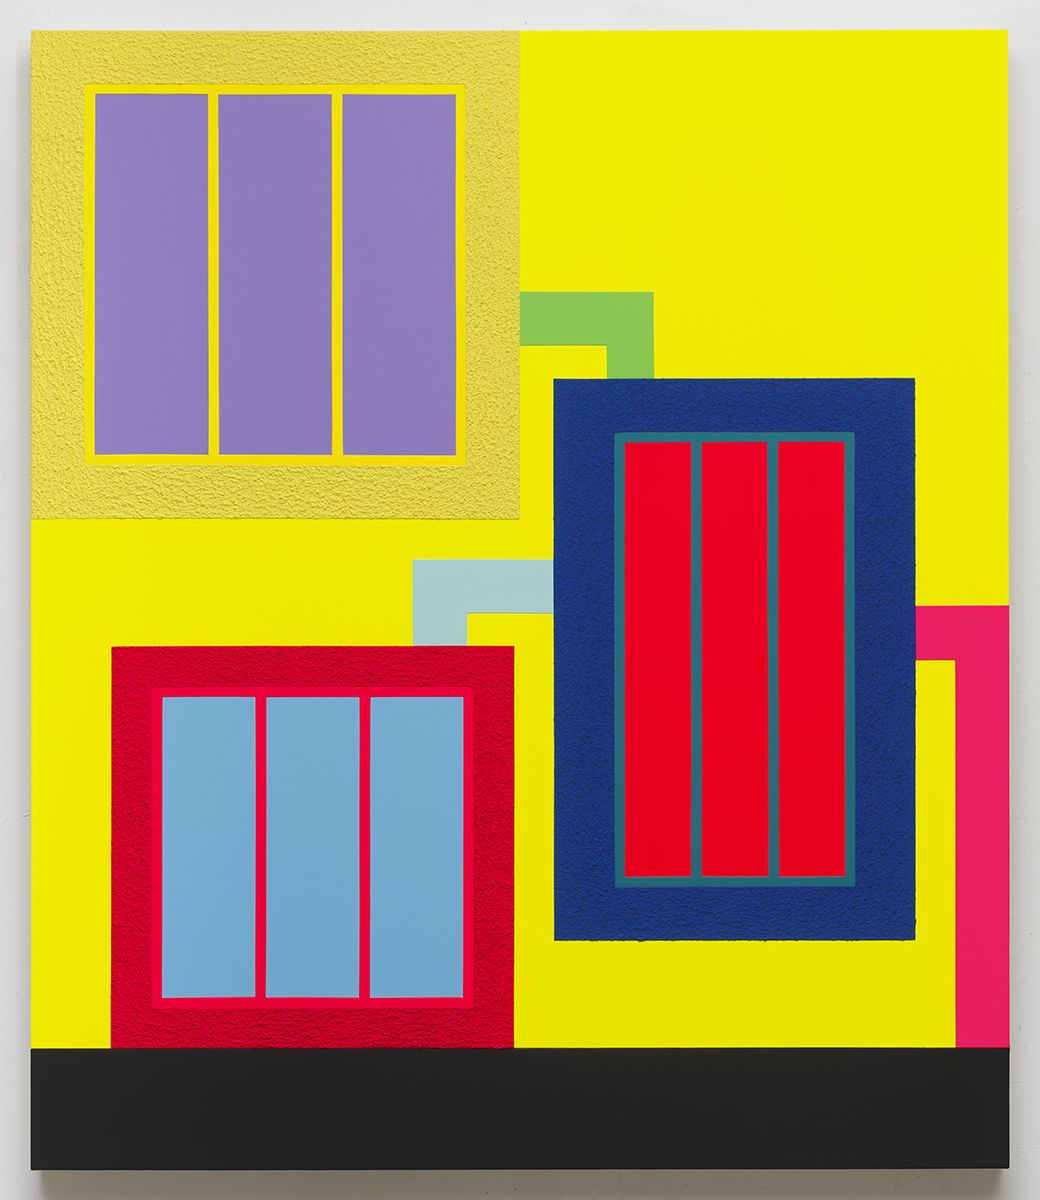 Peter Halley, Trouble, 2017 Acrylic, fluorescent acrylic, Flashe and Roll-A-Tex on canvas 86 x 73 inches (218.4 x 185.4 cm)